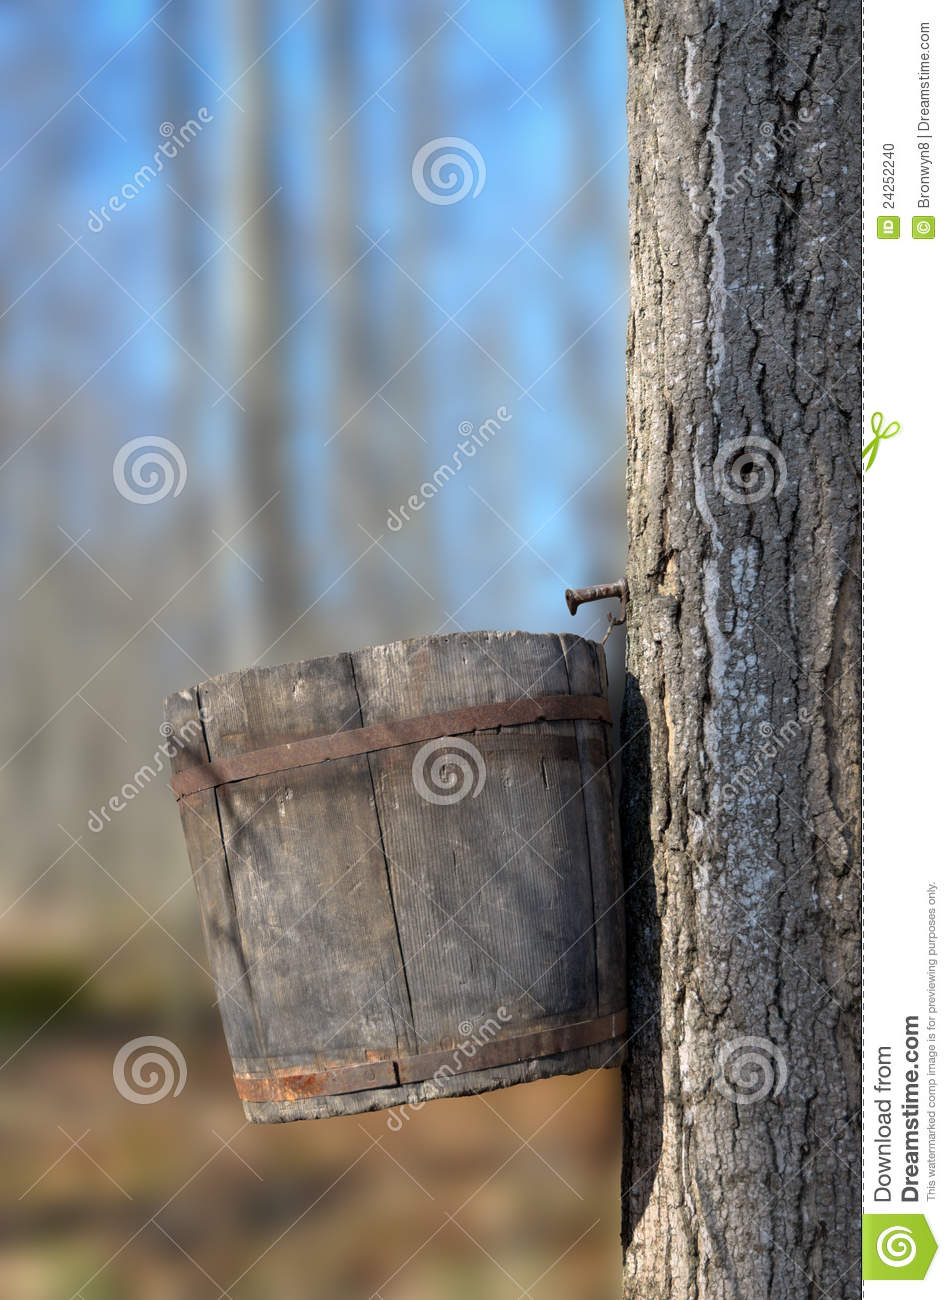 Wood Bucket On Maple Tree To Collect Sap For Making Sugar